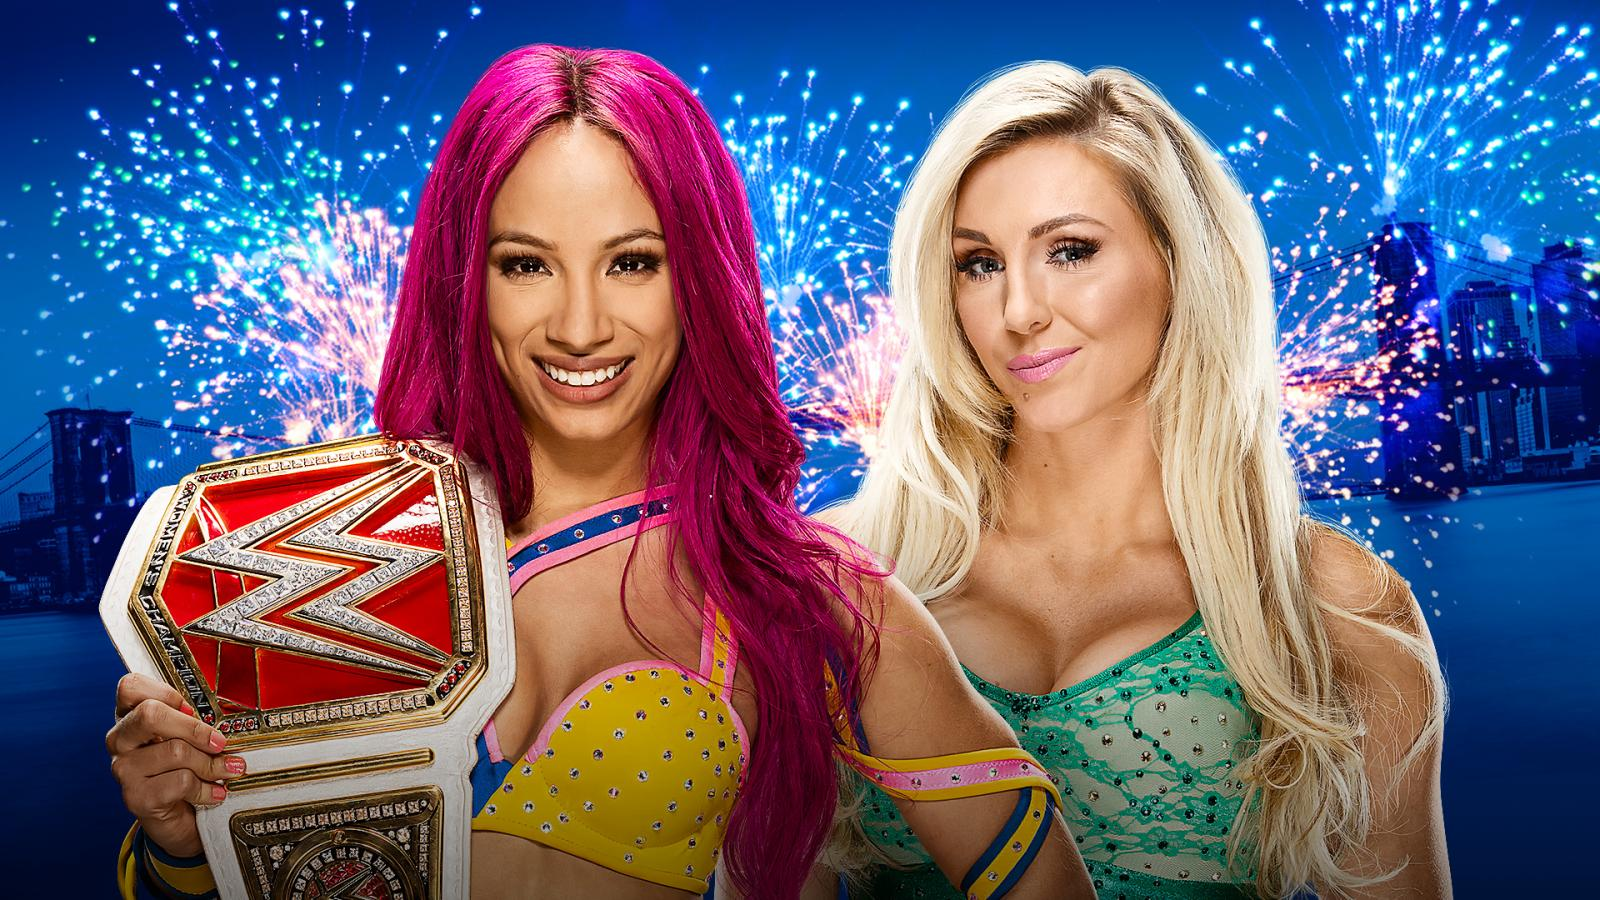 Wwe summerslam 2016 sasha banks vs charlotte rematch set